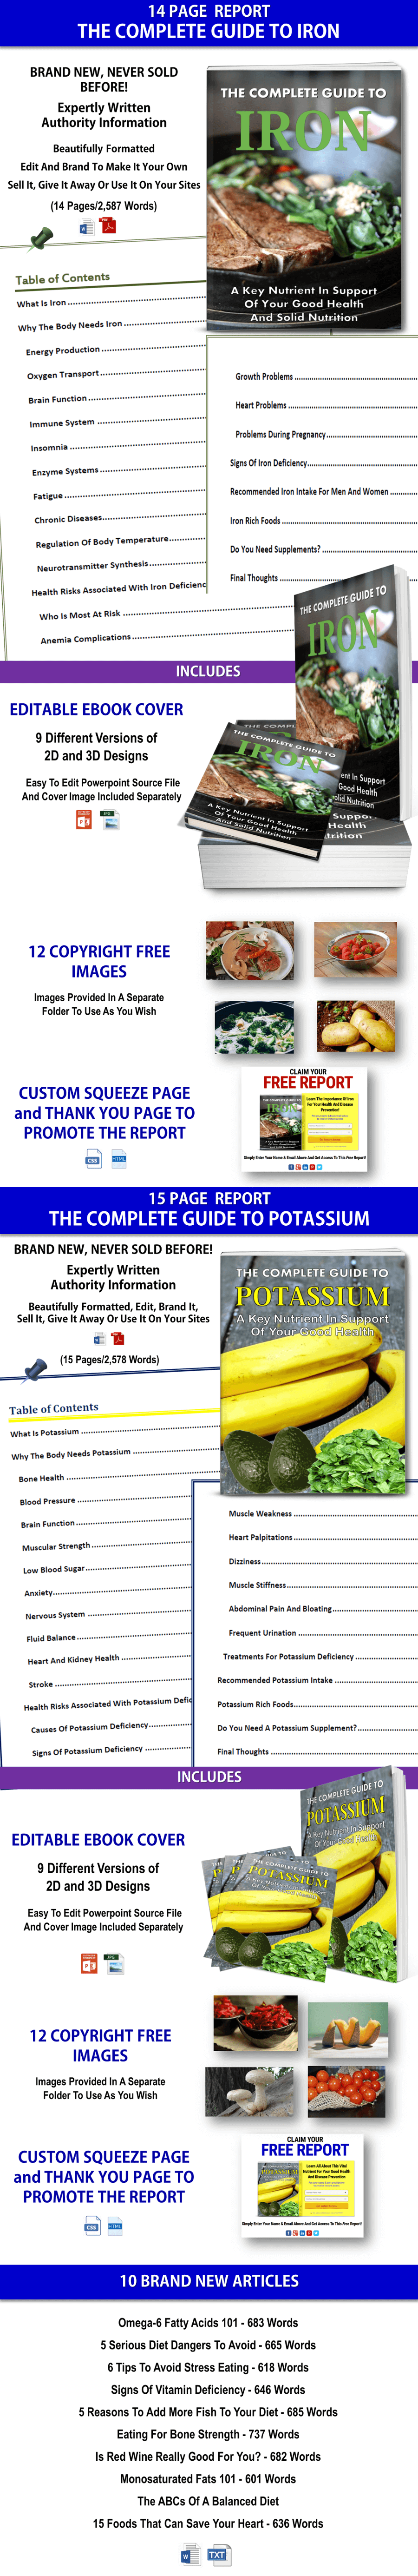 Nutrition Iron, Potassium & 10 Articles PLR